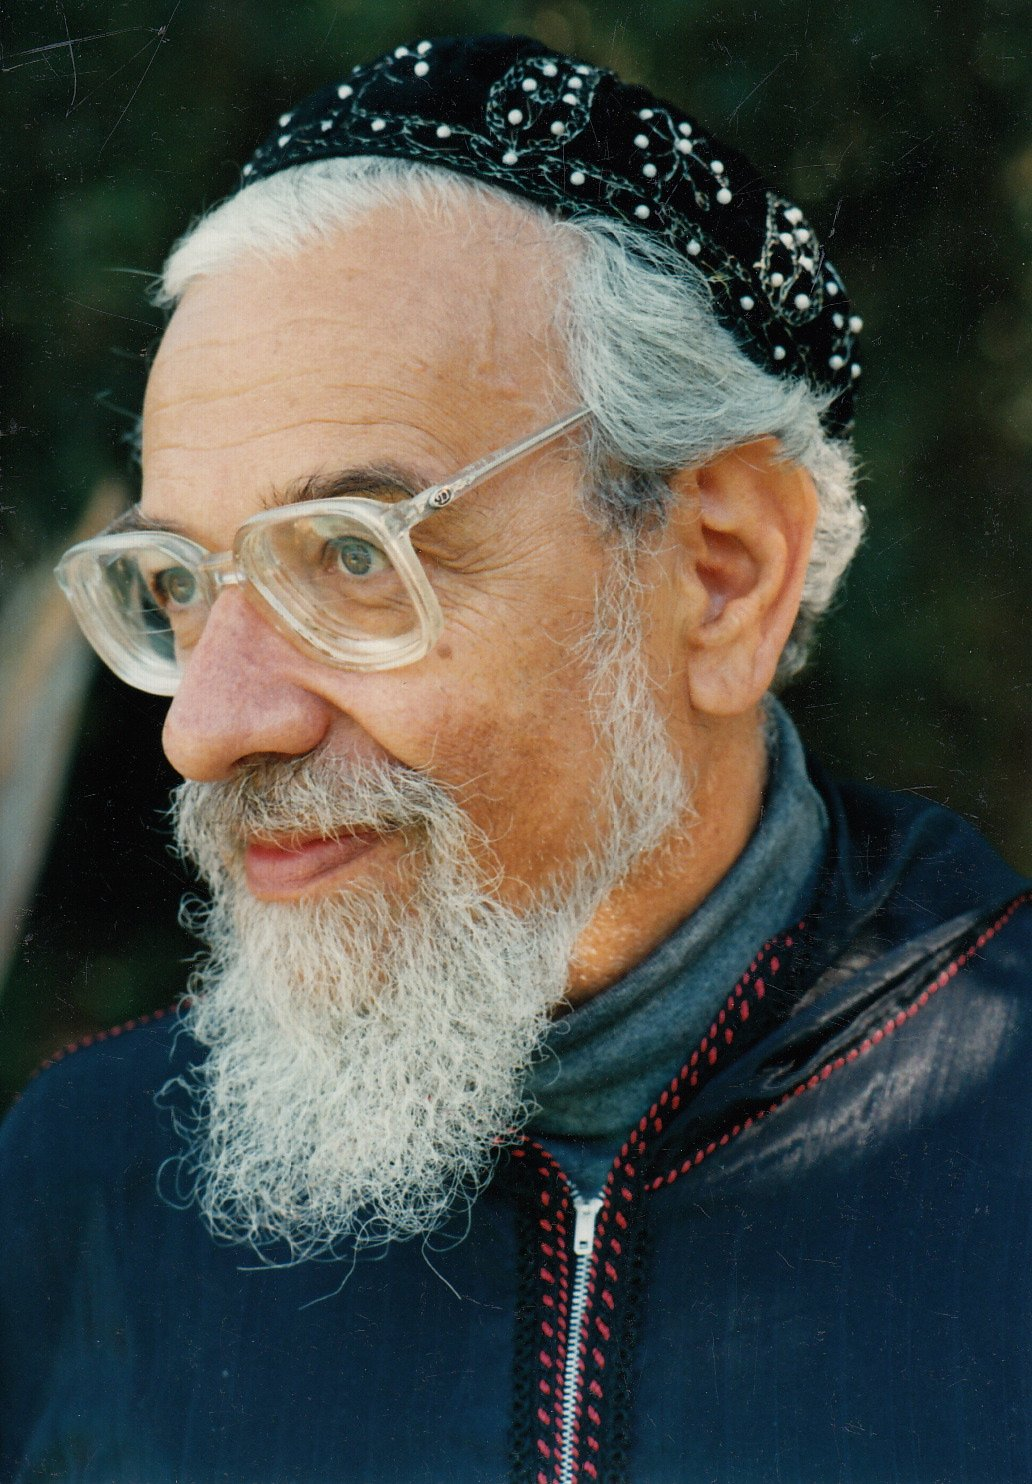 Rabbi Zalman Schachter-Shalomi in blue robe with red stitching and pearl-embroidered kippah, early 1990s.